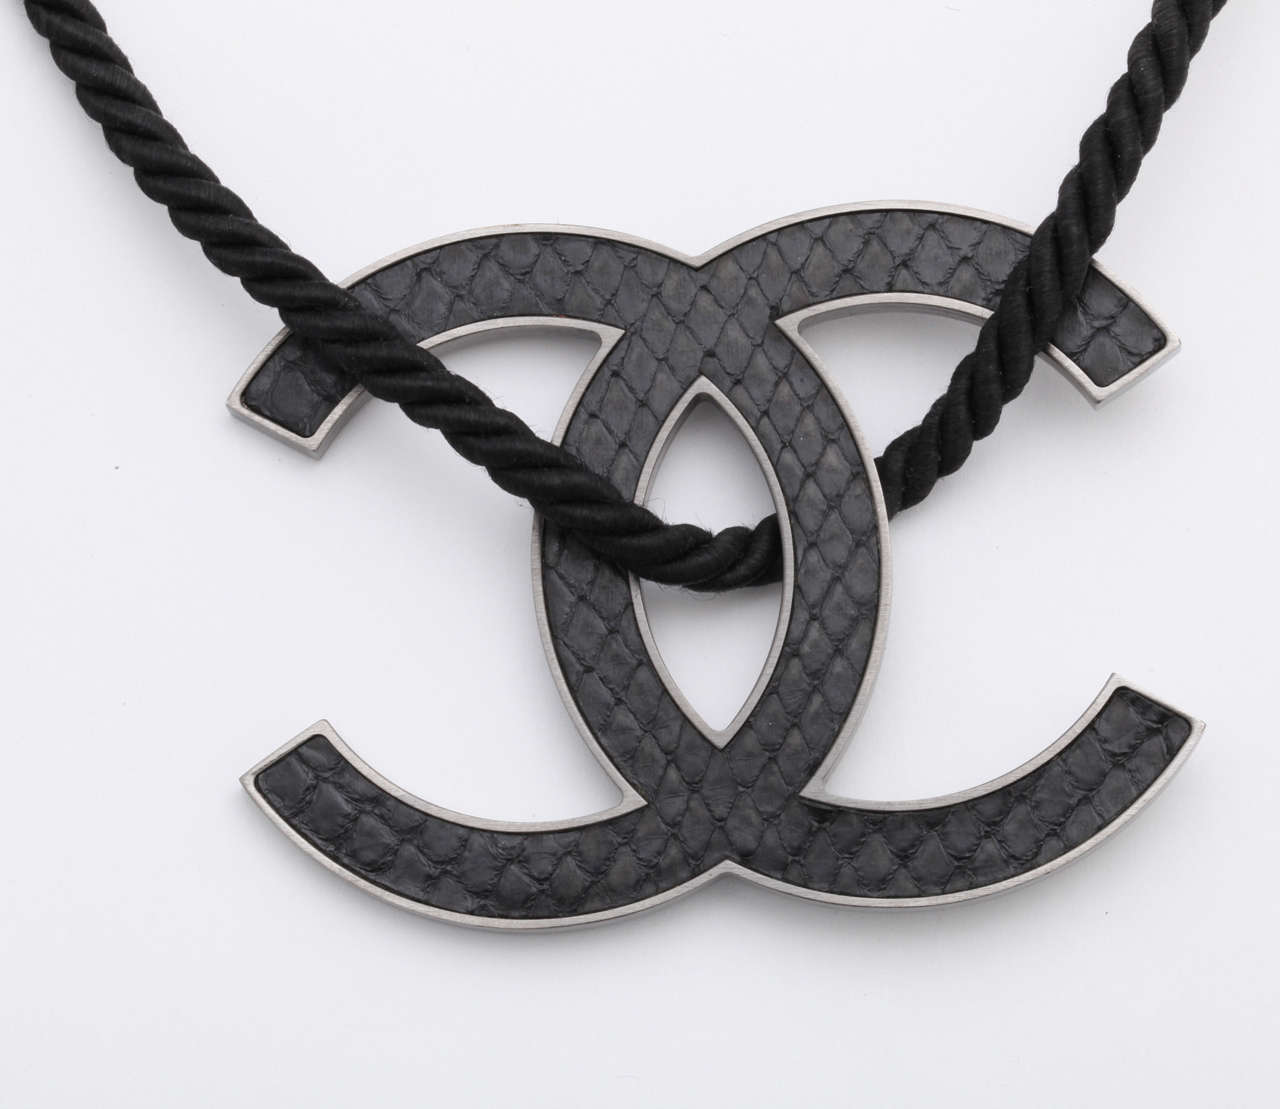 Chanel large black cc logo necklace at 1stdibs chanel large black cc logo necklace in as new condition for sale in new york aloadofball Image collections